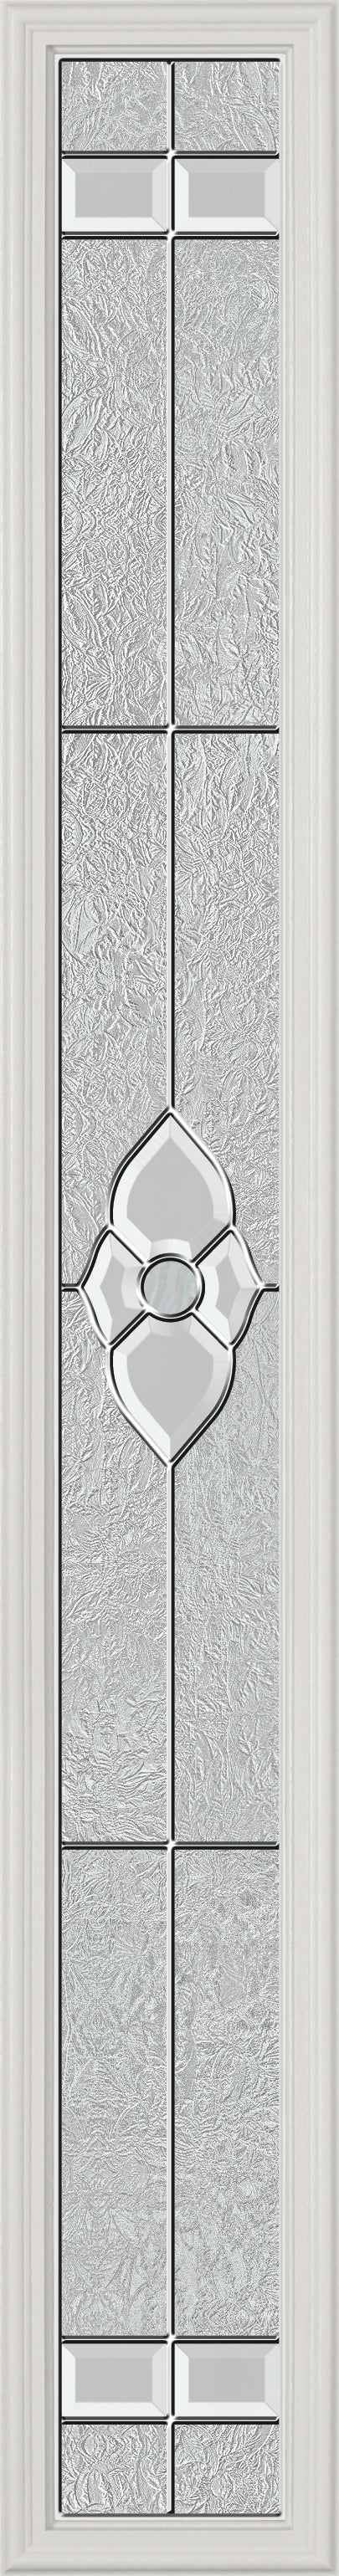 "Normandy Glass and Frame Kit (Full Sidelite 7"" x 64"" Glass Size)"